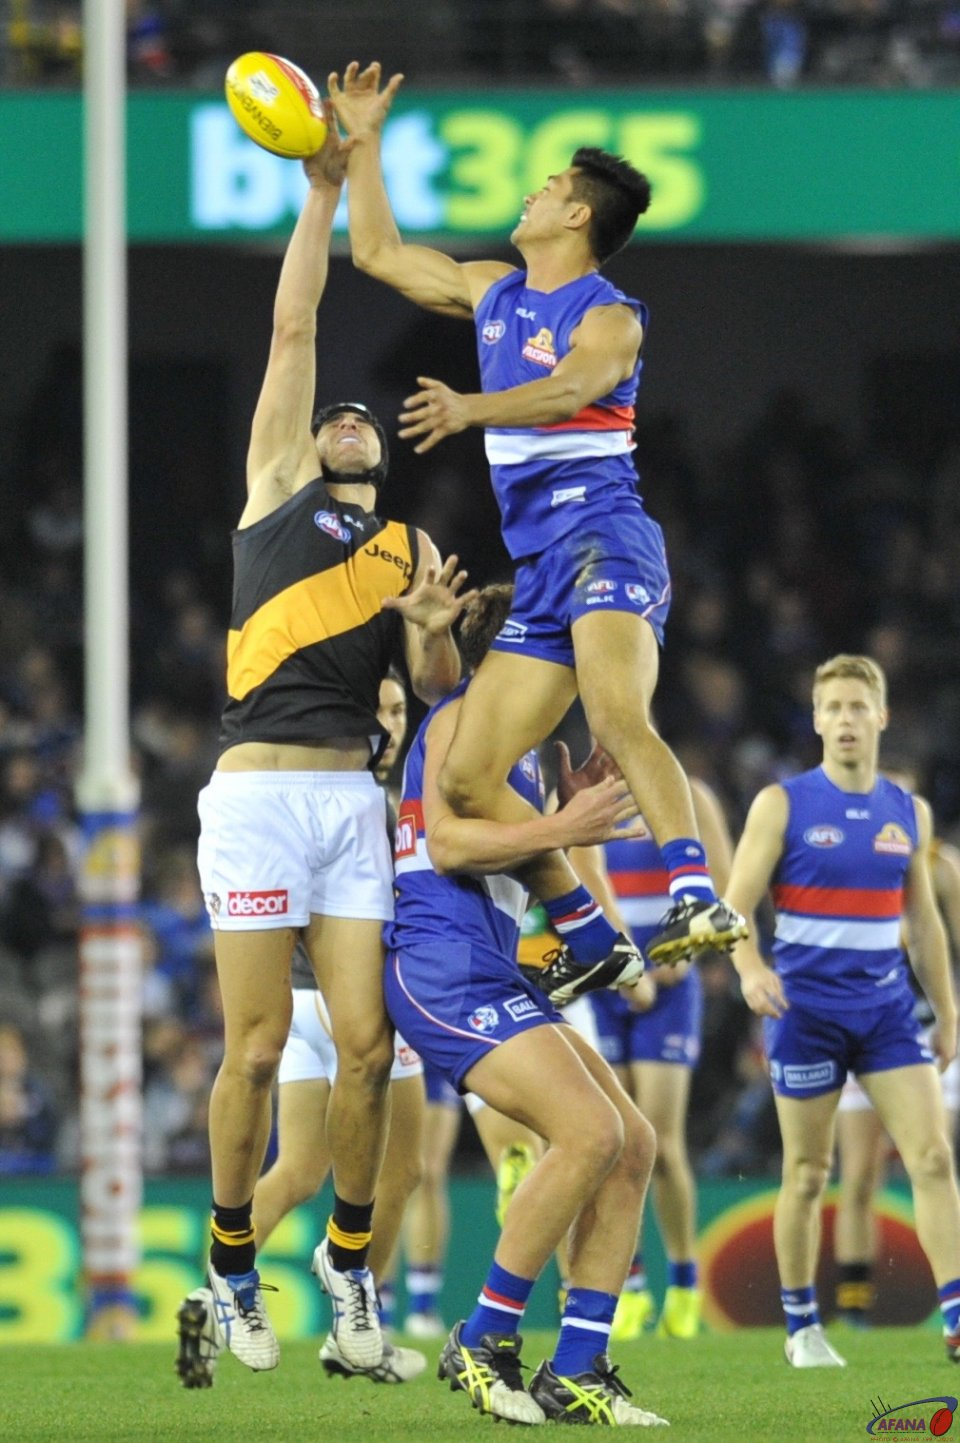 Lin Jong gets serious air against the tall Tigers ruckman